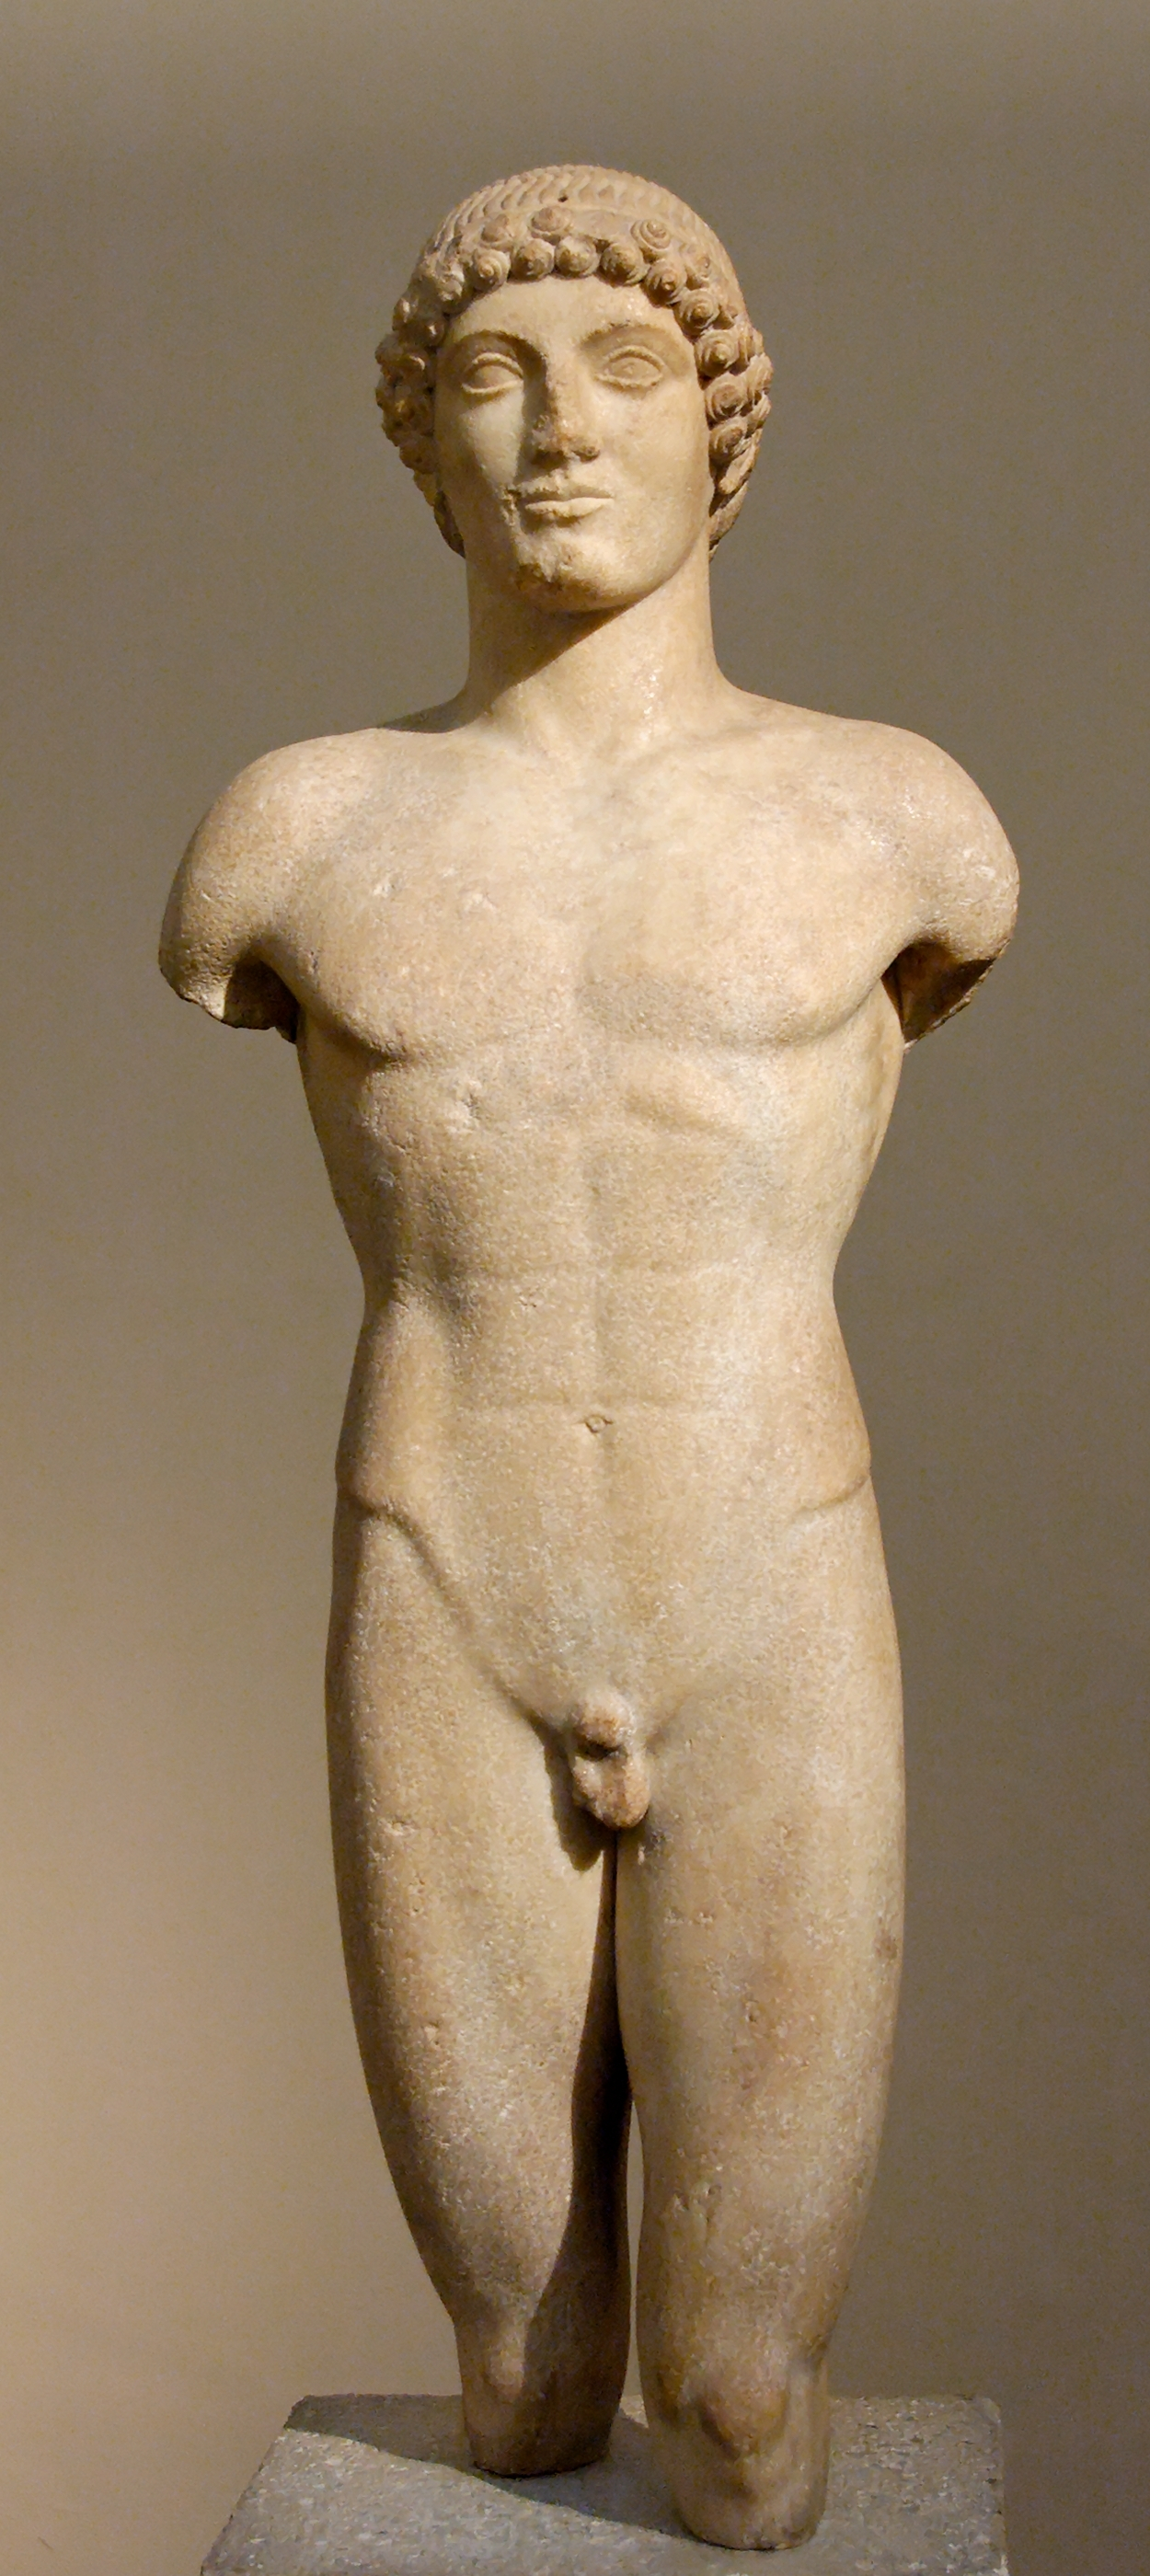 http://upload.wikimedia.org/wikipedia/commons/4/46/Kouros_Anaphe_BM_B475.jpg